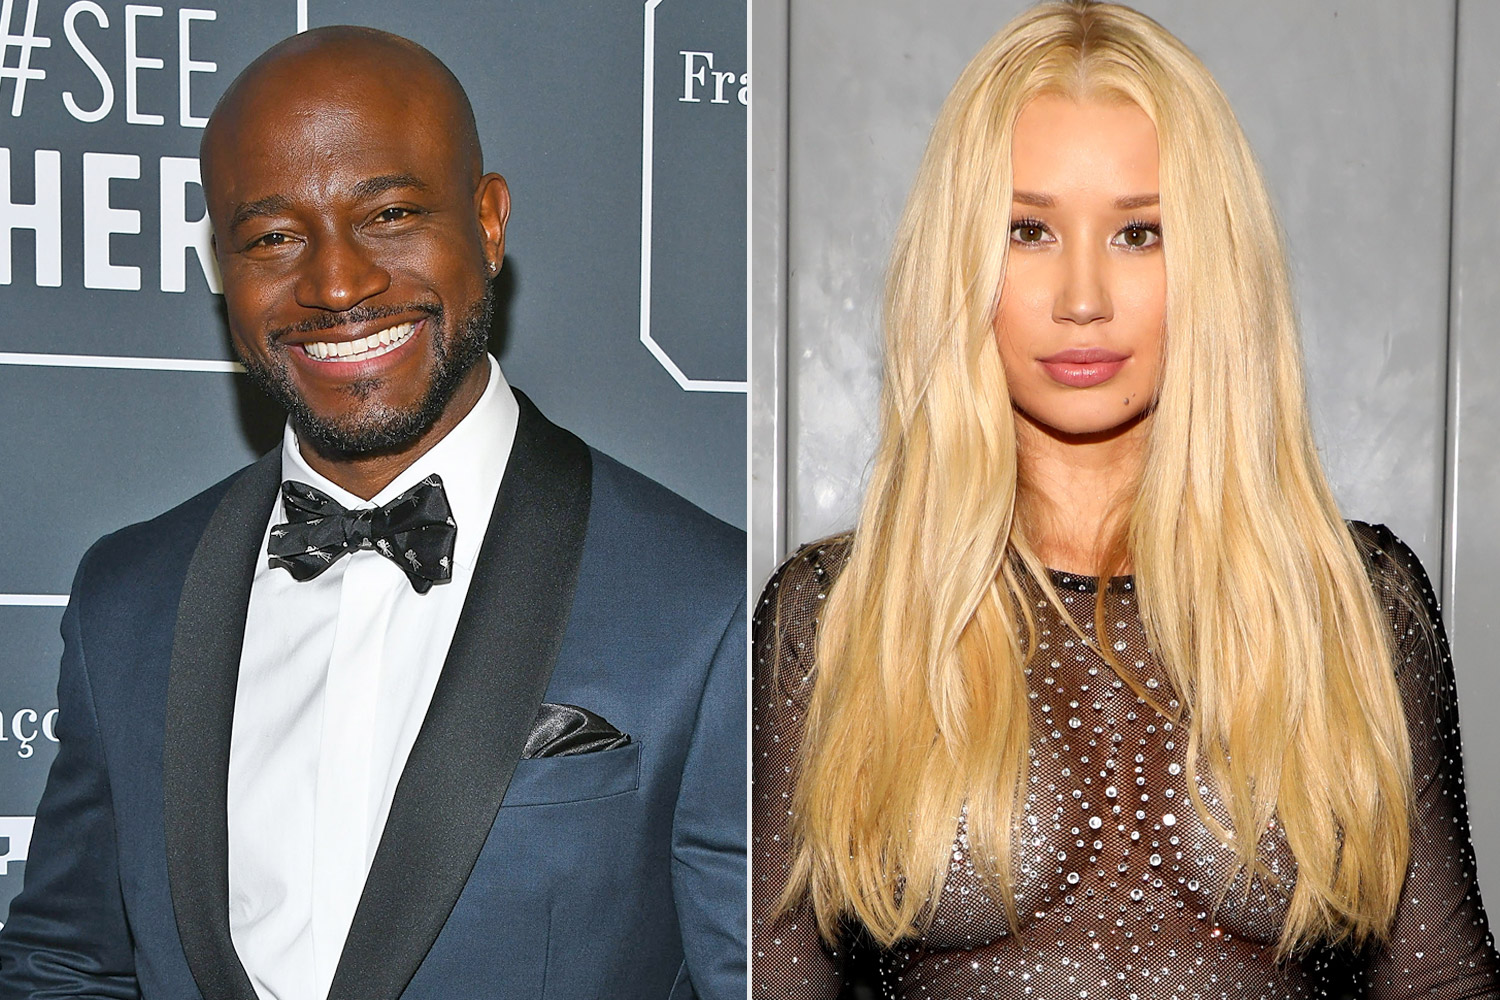 Iggy Azalea and Taye Diggs